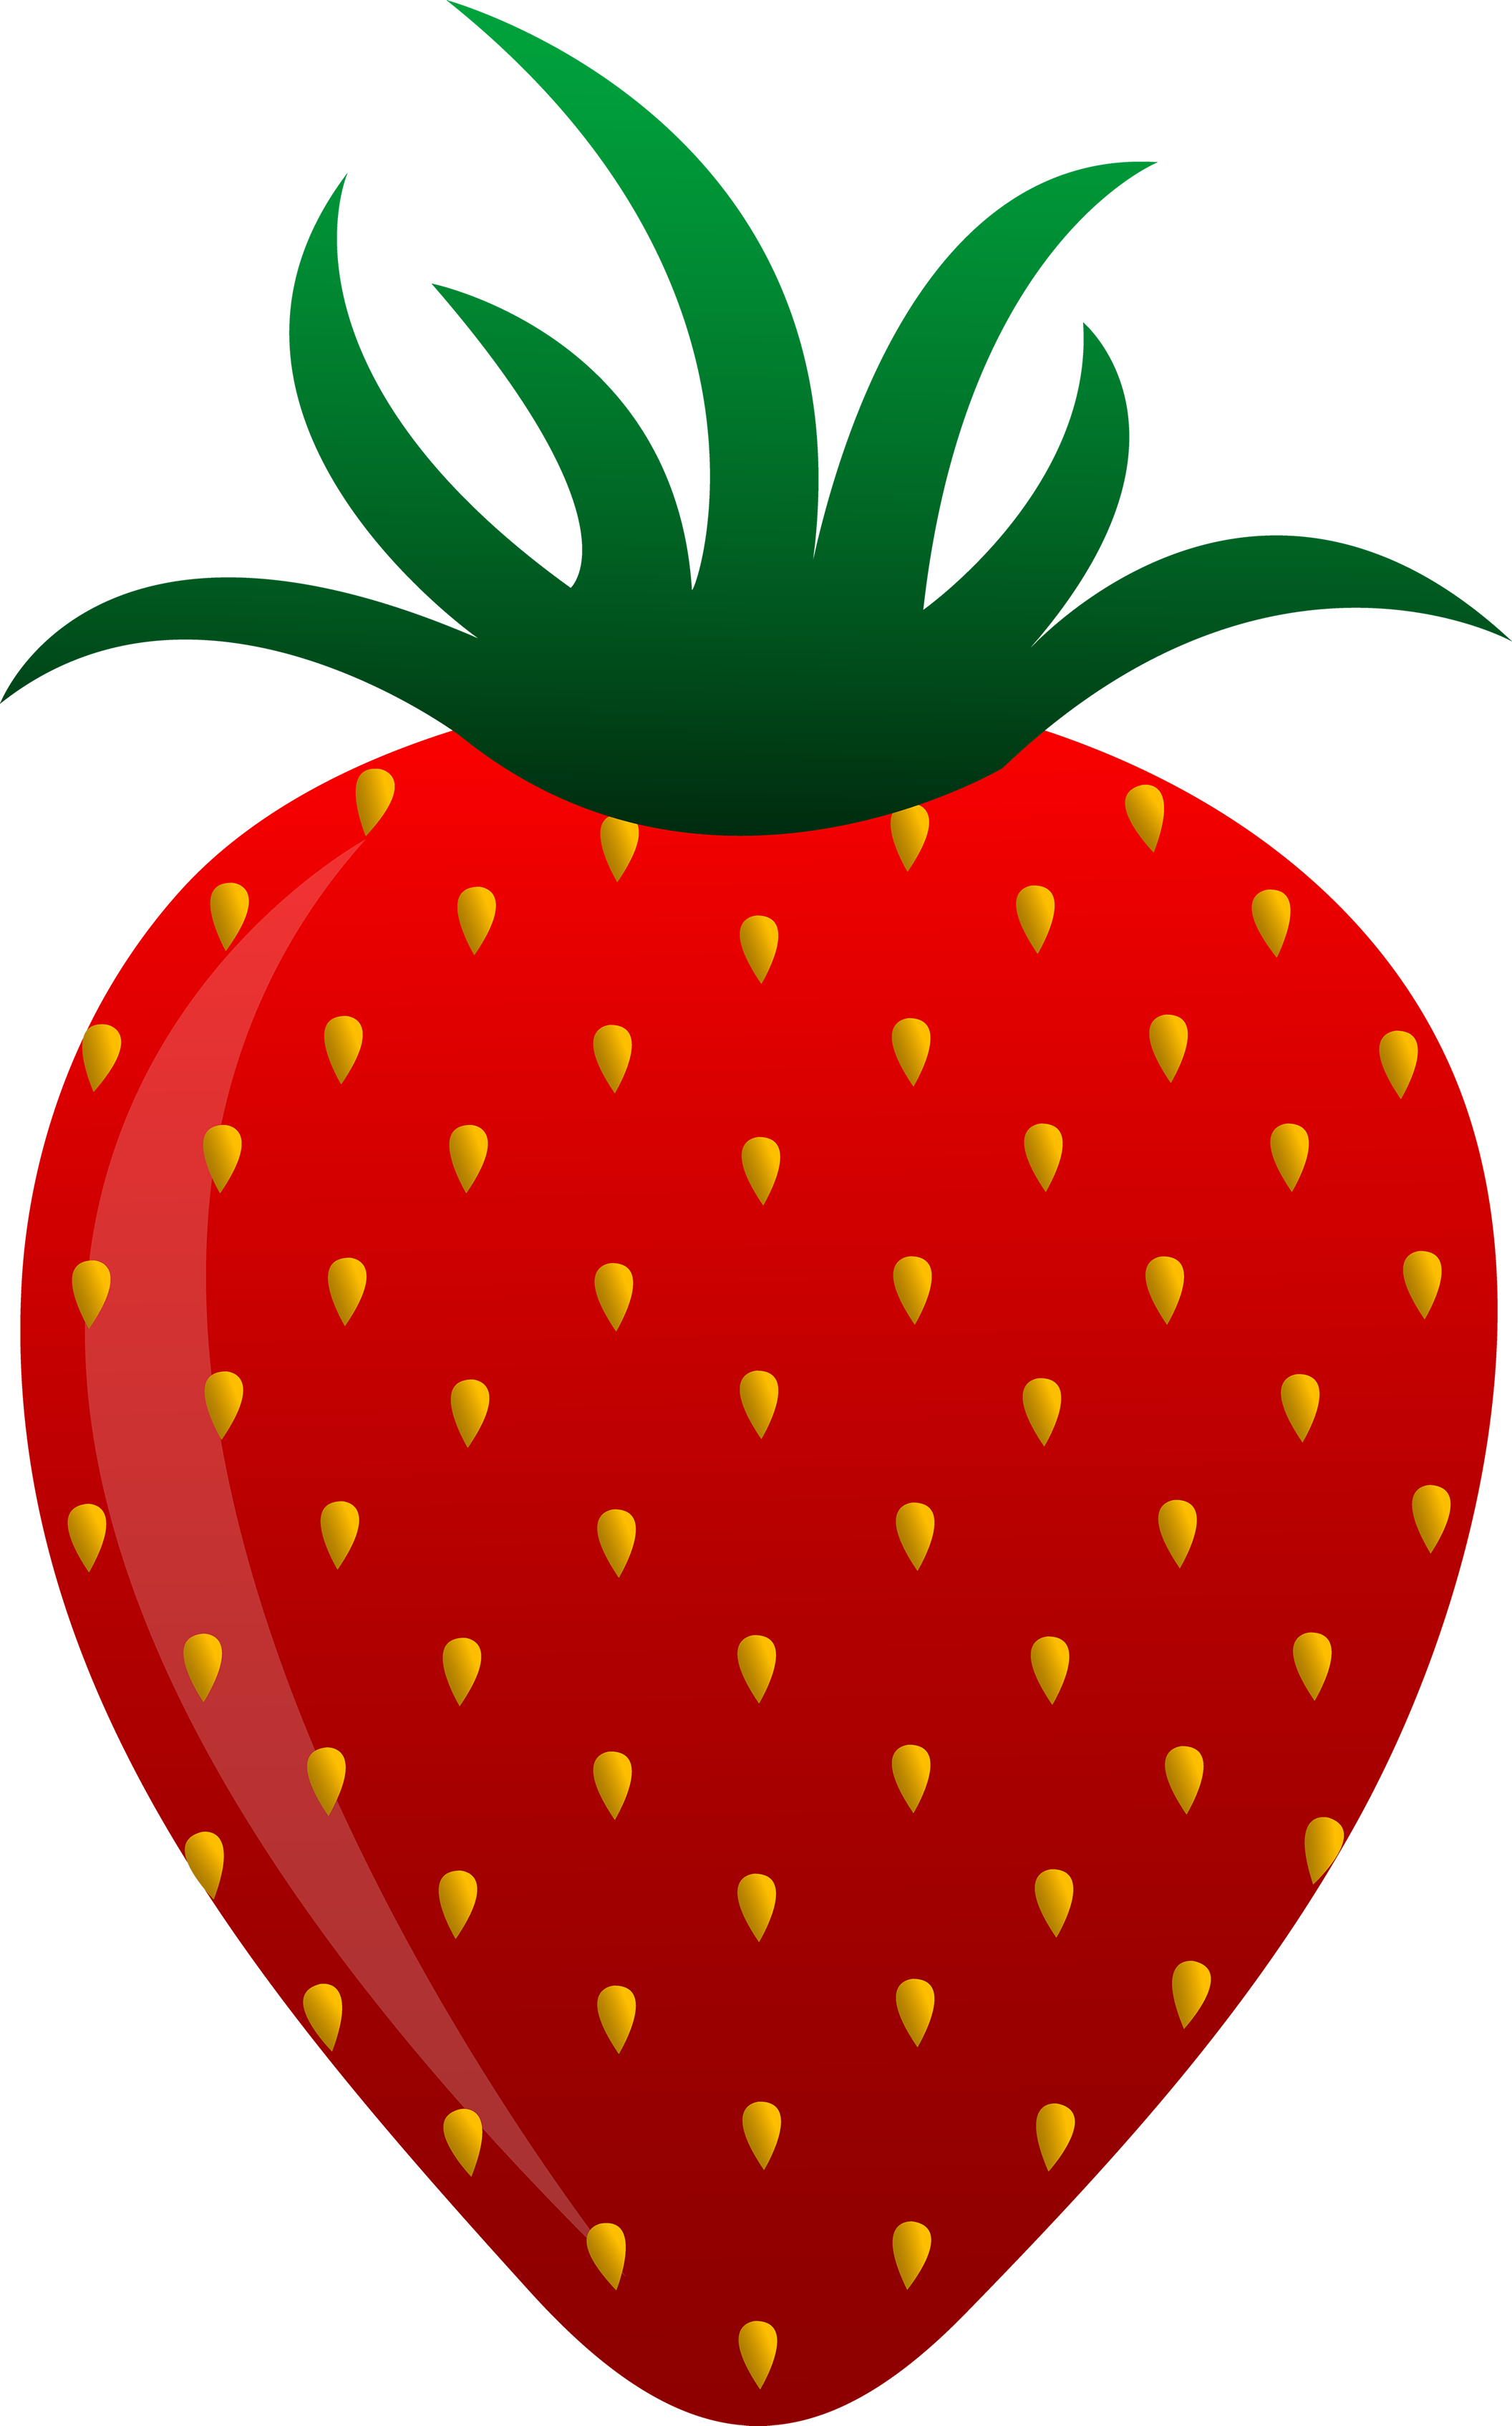 Strawberry png image purepng. Pineapple clipart vector